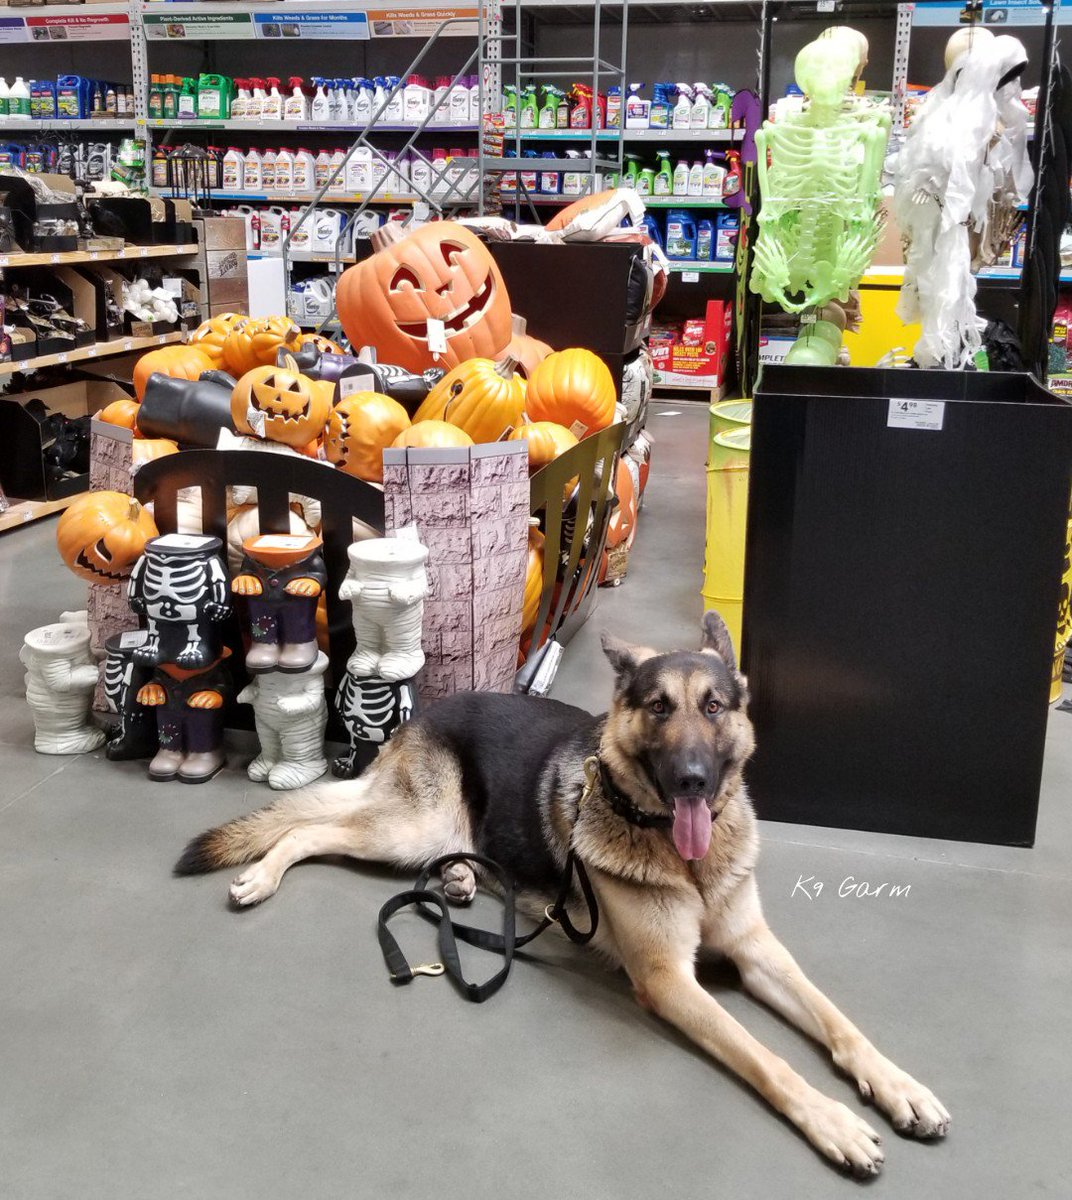 Thats it, its official! Once the fall/Halloween decor comes out at Lowes its officially the hap-happiest time of the year!  #K9Garm #SARK9 #dogsoftwitter #dog #dogs #germanshepherd #gsd #moosedog #FaMoose<br>http://pic.twitter.com/TSLIYXInYI